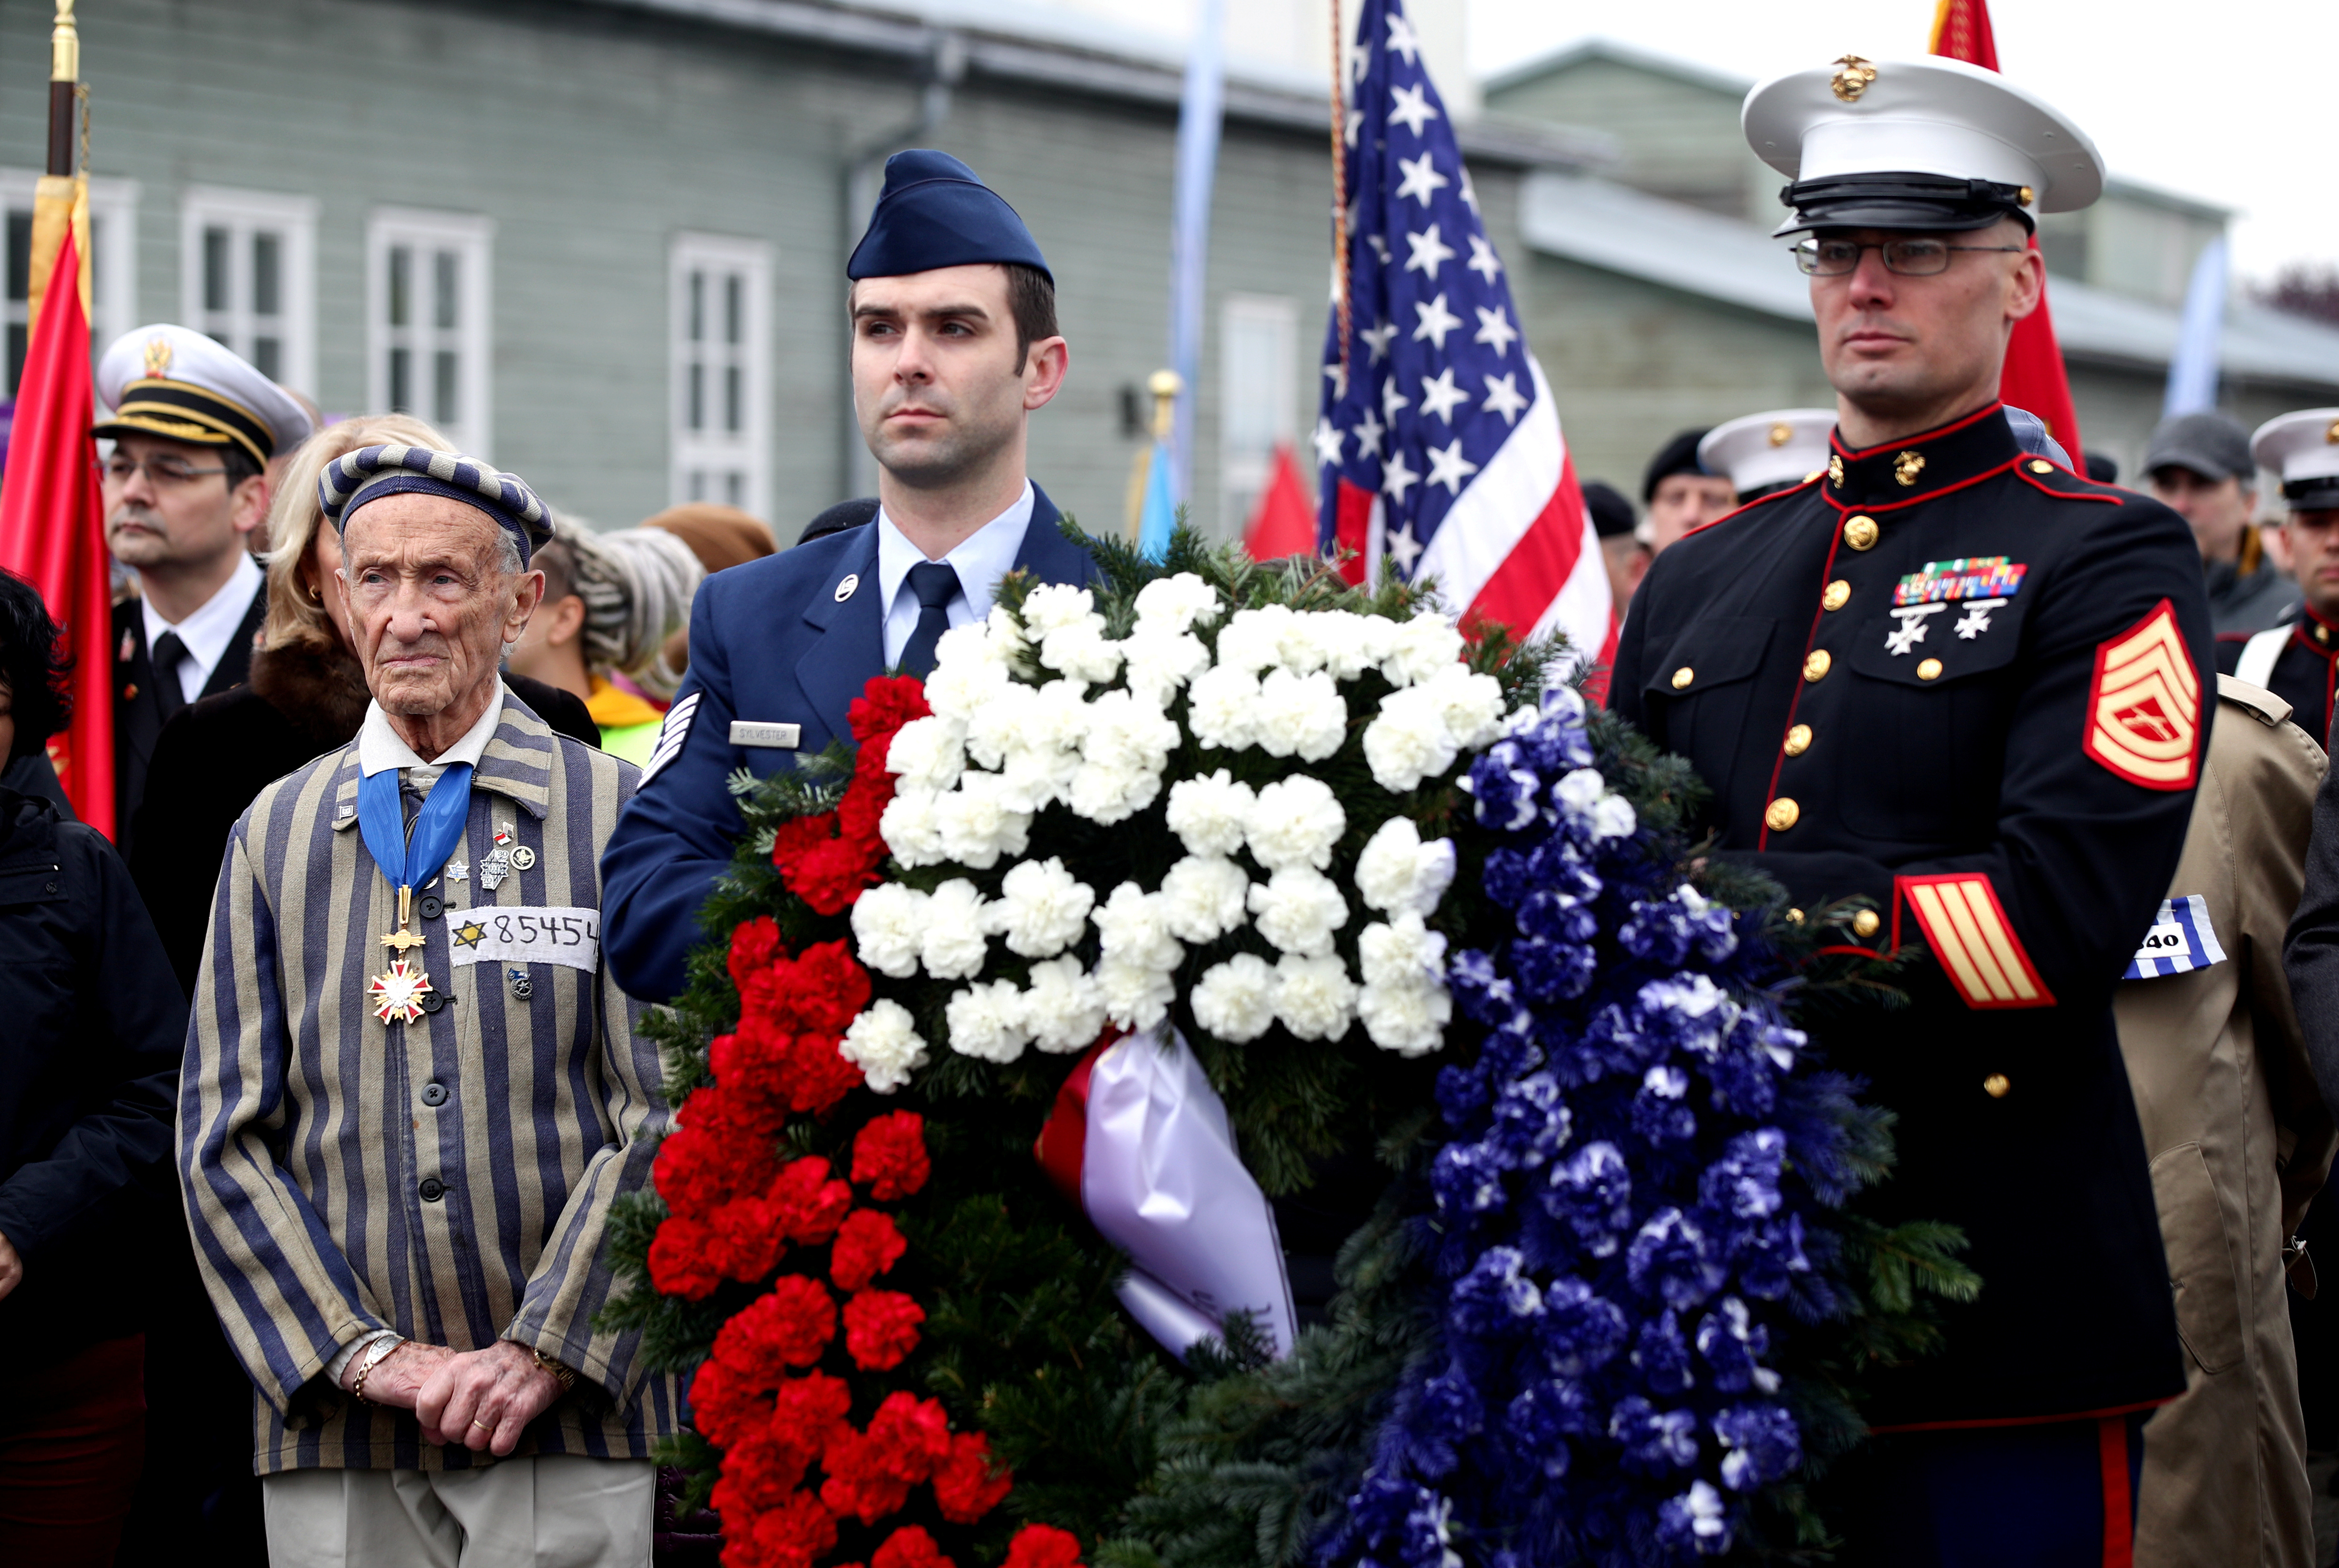 Concentration camp survivor Ed Mosberg and a delegation from the U.S. attend the commemoration at the former concentration camp KZ Mauthausen, liberated by U.S. troops on May 5, 1945 at the memorial site in Mauthausen, Austria, May 5, 2019. REUTERS/Lisi Niesner - RC1559CBCDC0